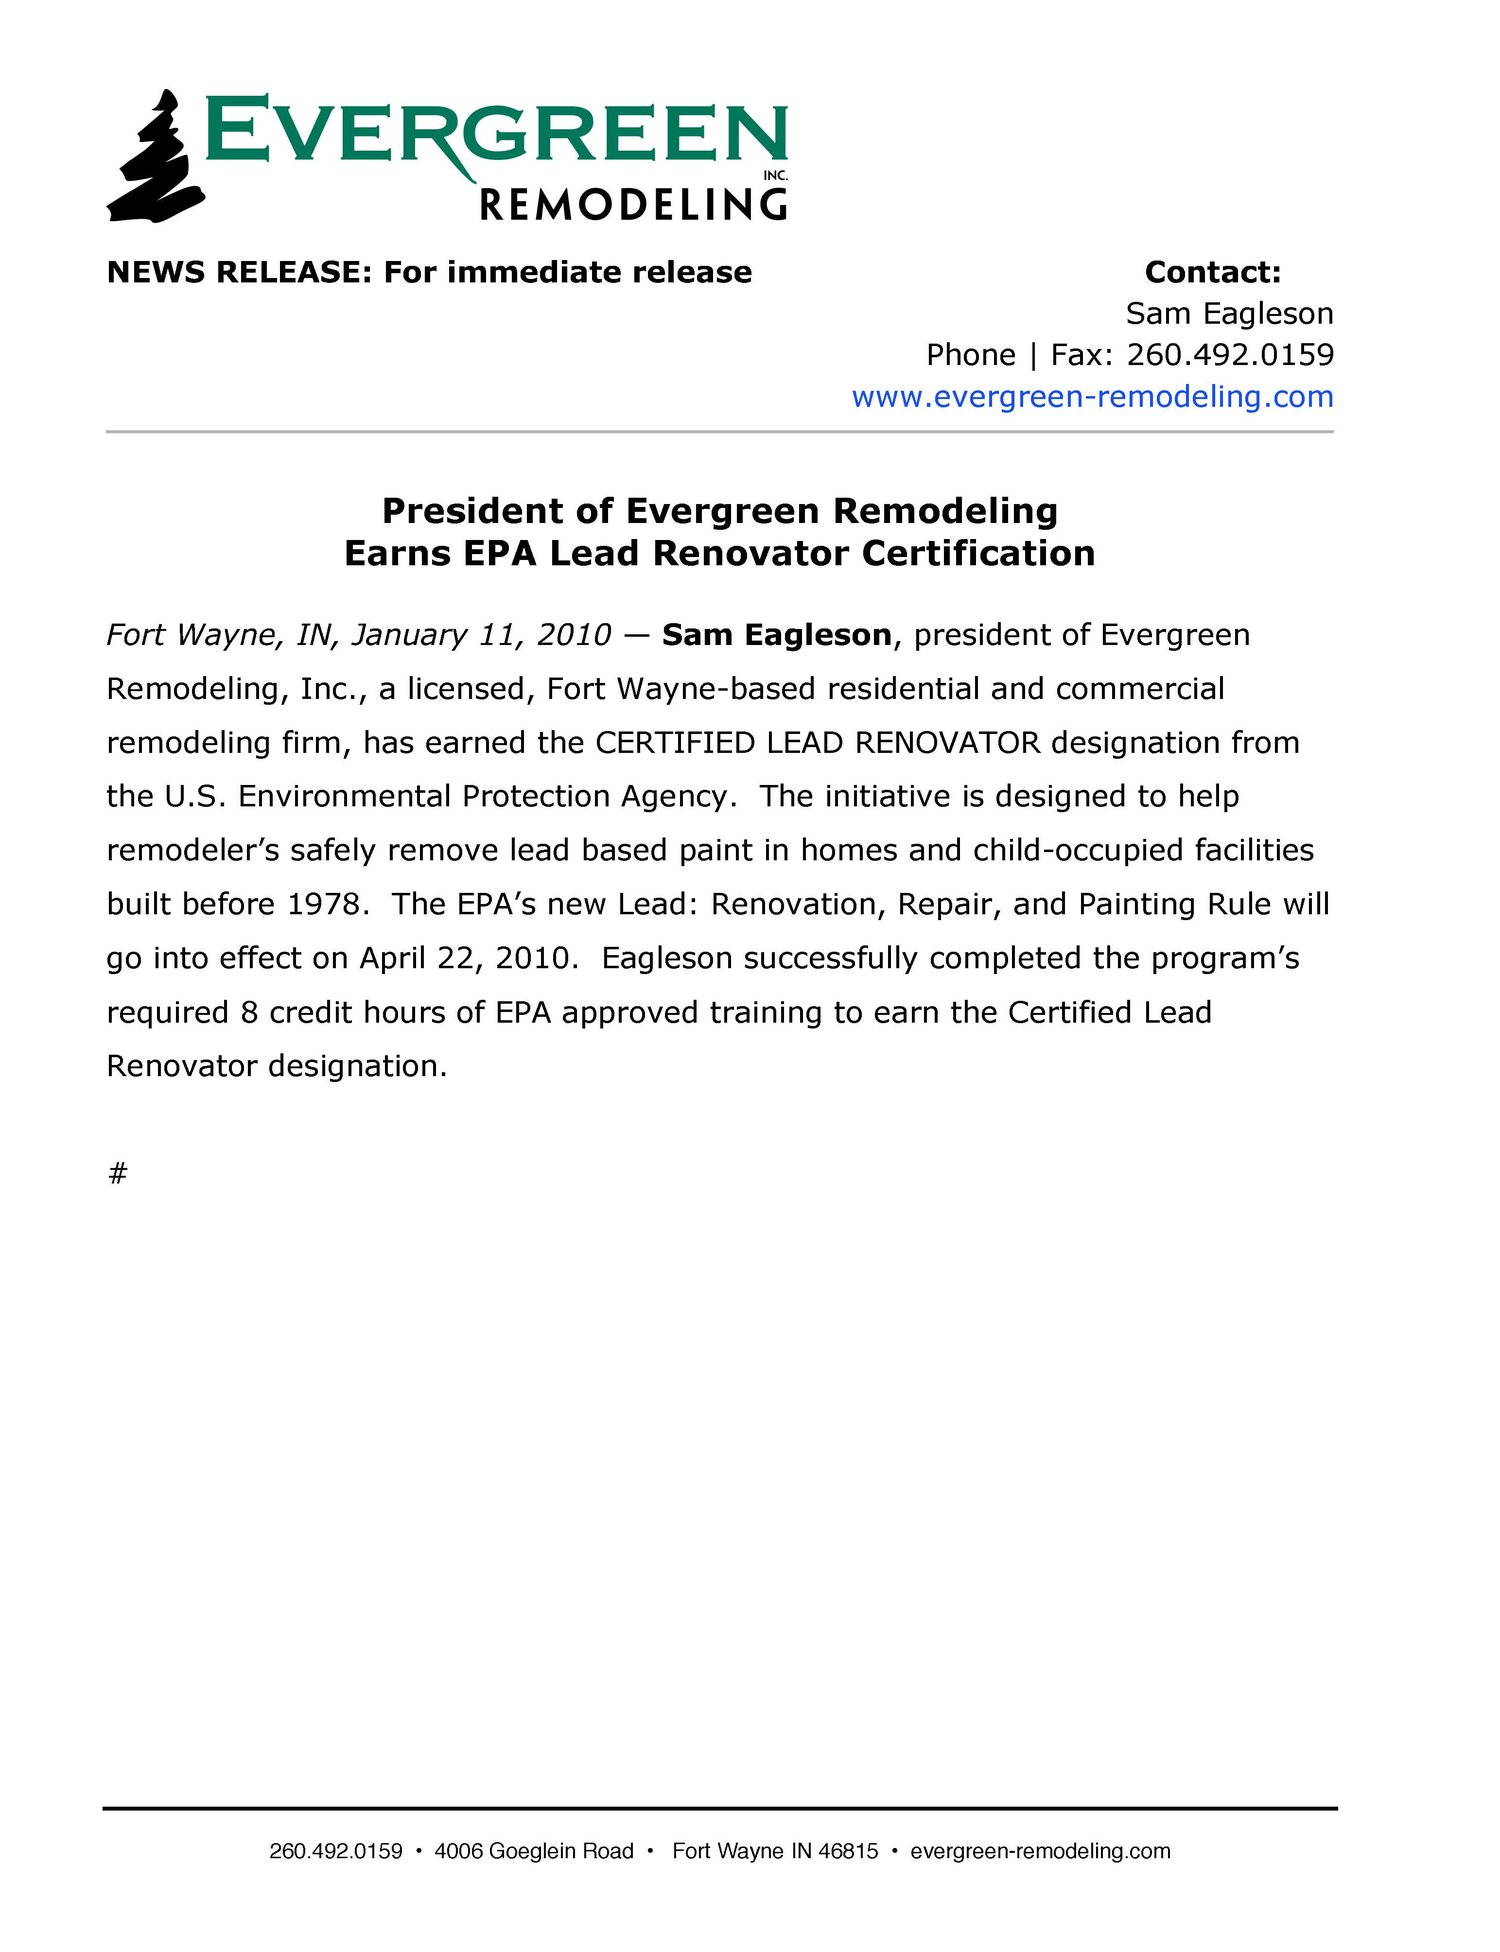 President of Evergreen Remodeling Earns EPA Lead Renovator ...